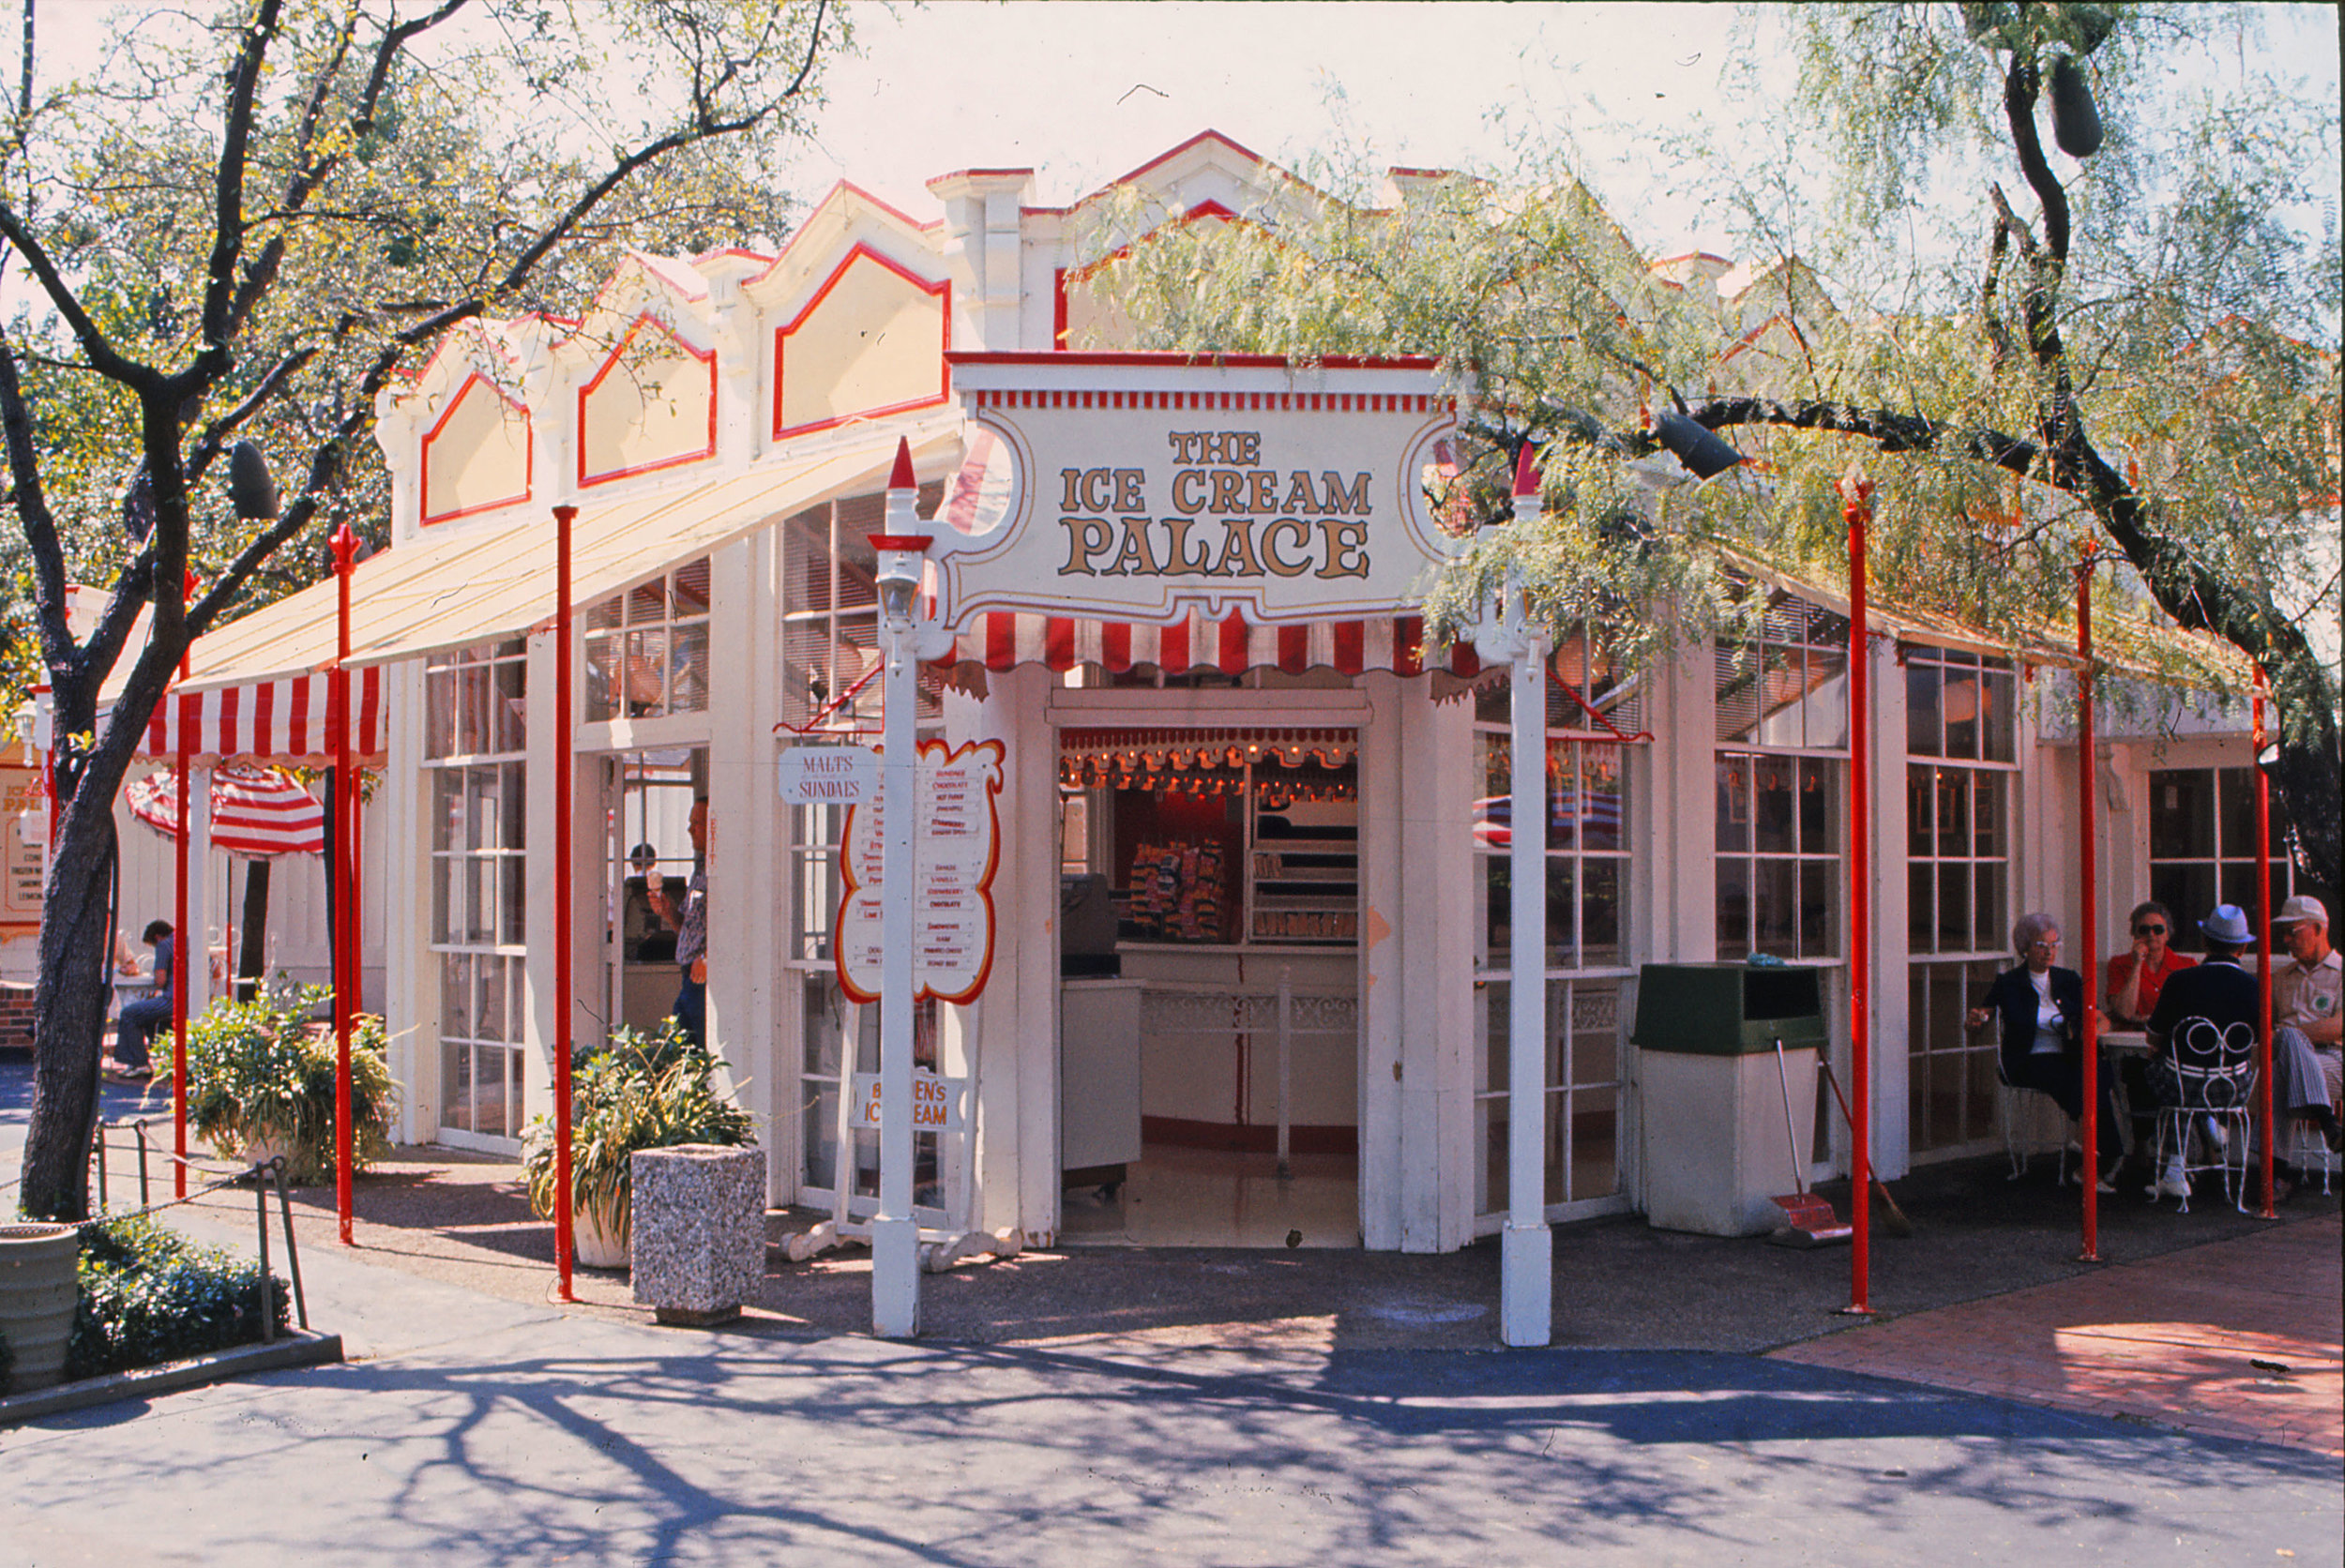 Ice Cream Palace Early Year Unknown.jpg